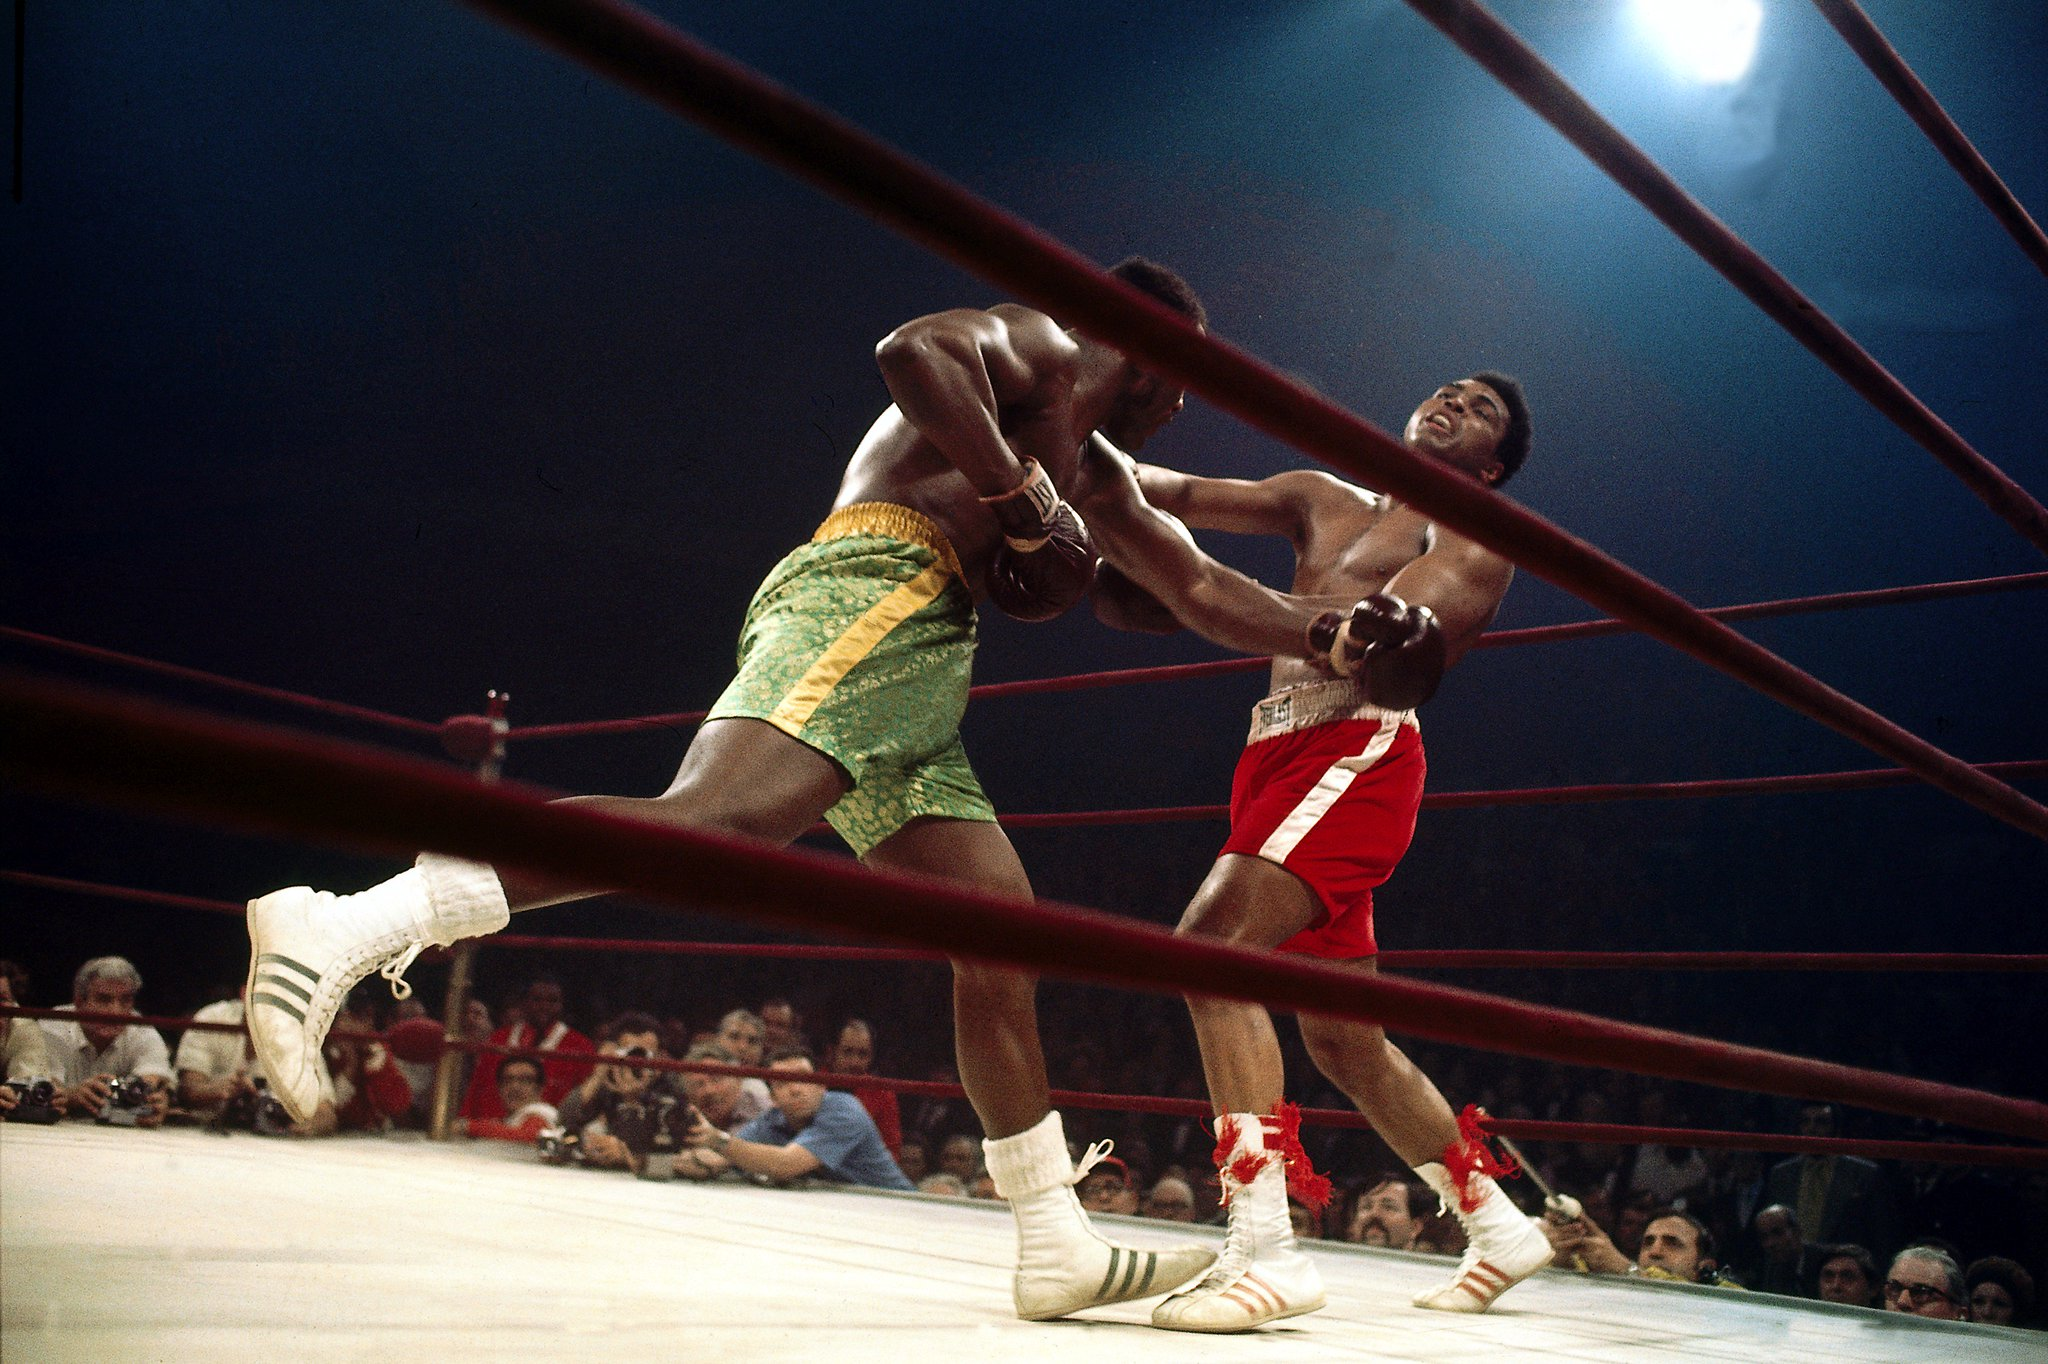 Fight of the Century, 47 years ago today https://t.co/Vc4yEIAePW